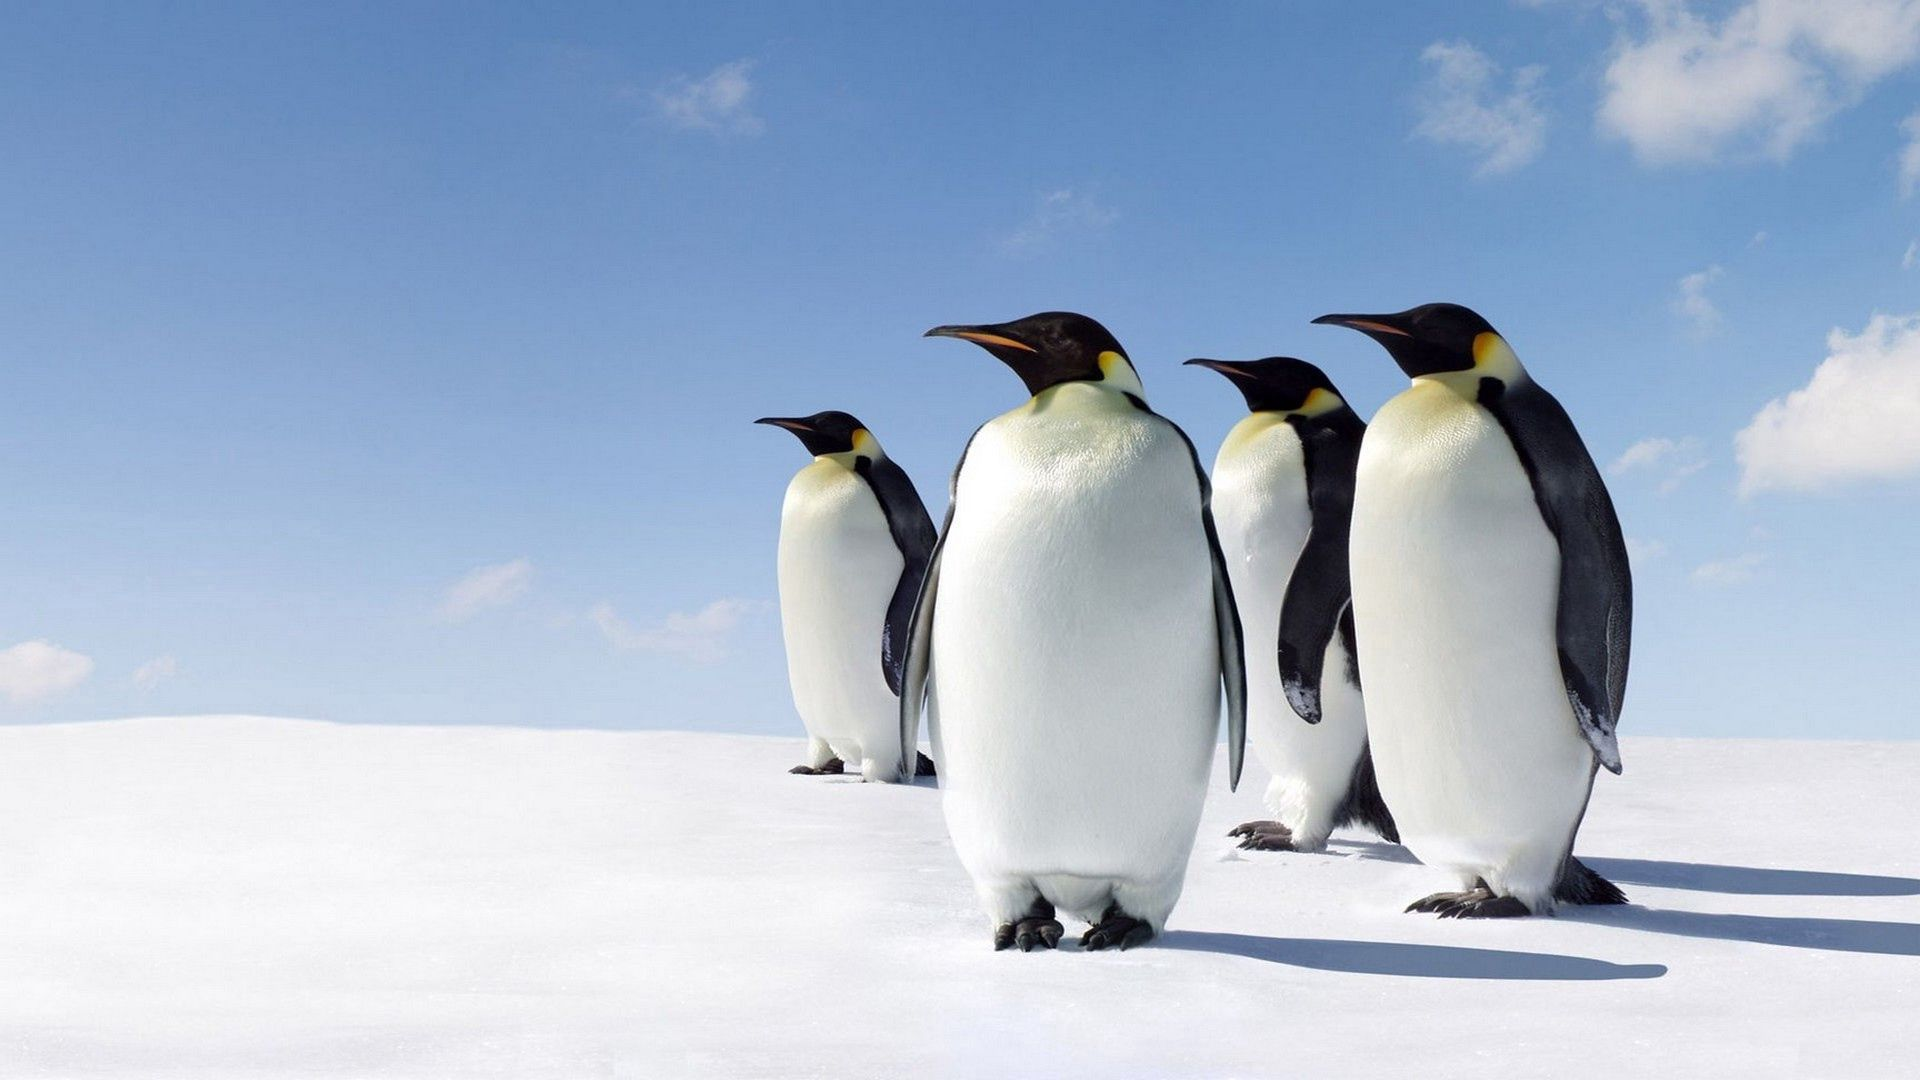 71903 download wallpaper Animals, Pinguins, Snow, Stroll screensavers and pictures for free